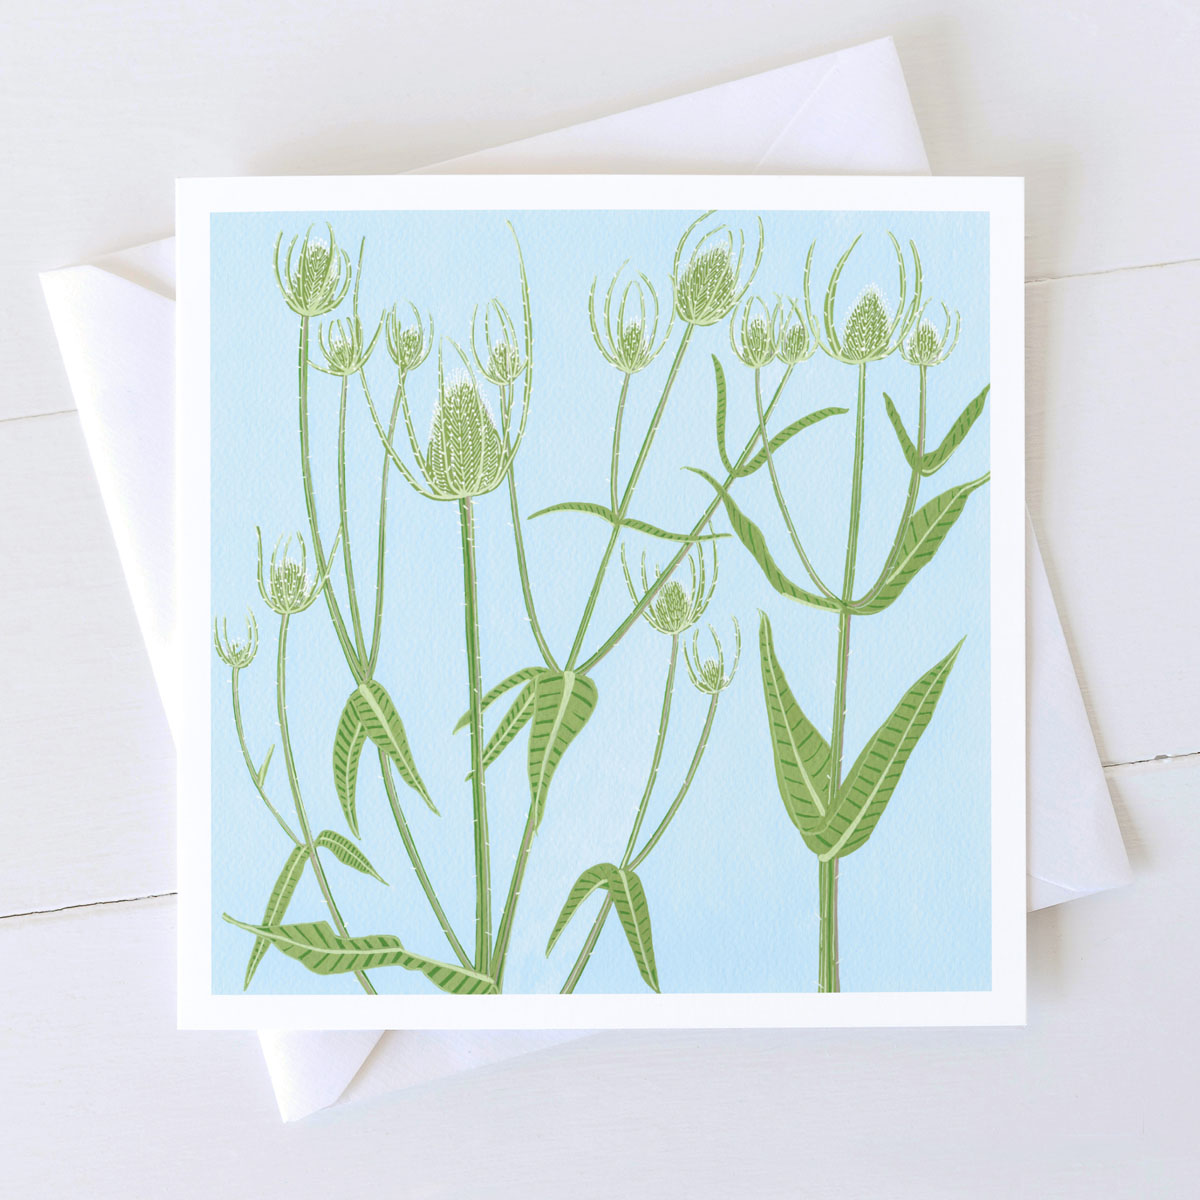 Teasel Wild Plant Greeting Card